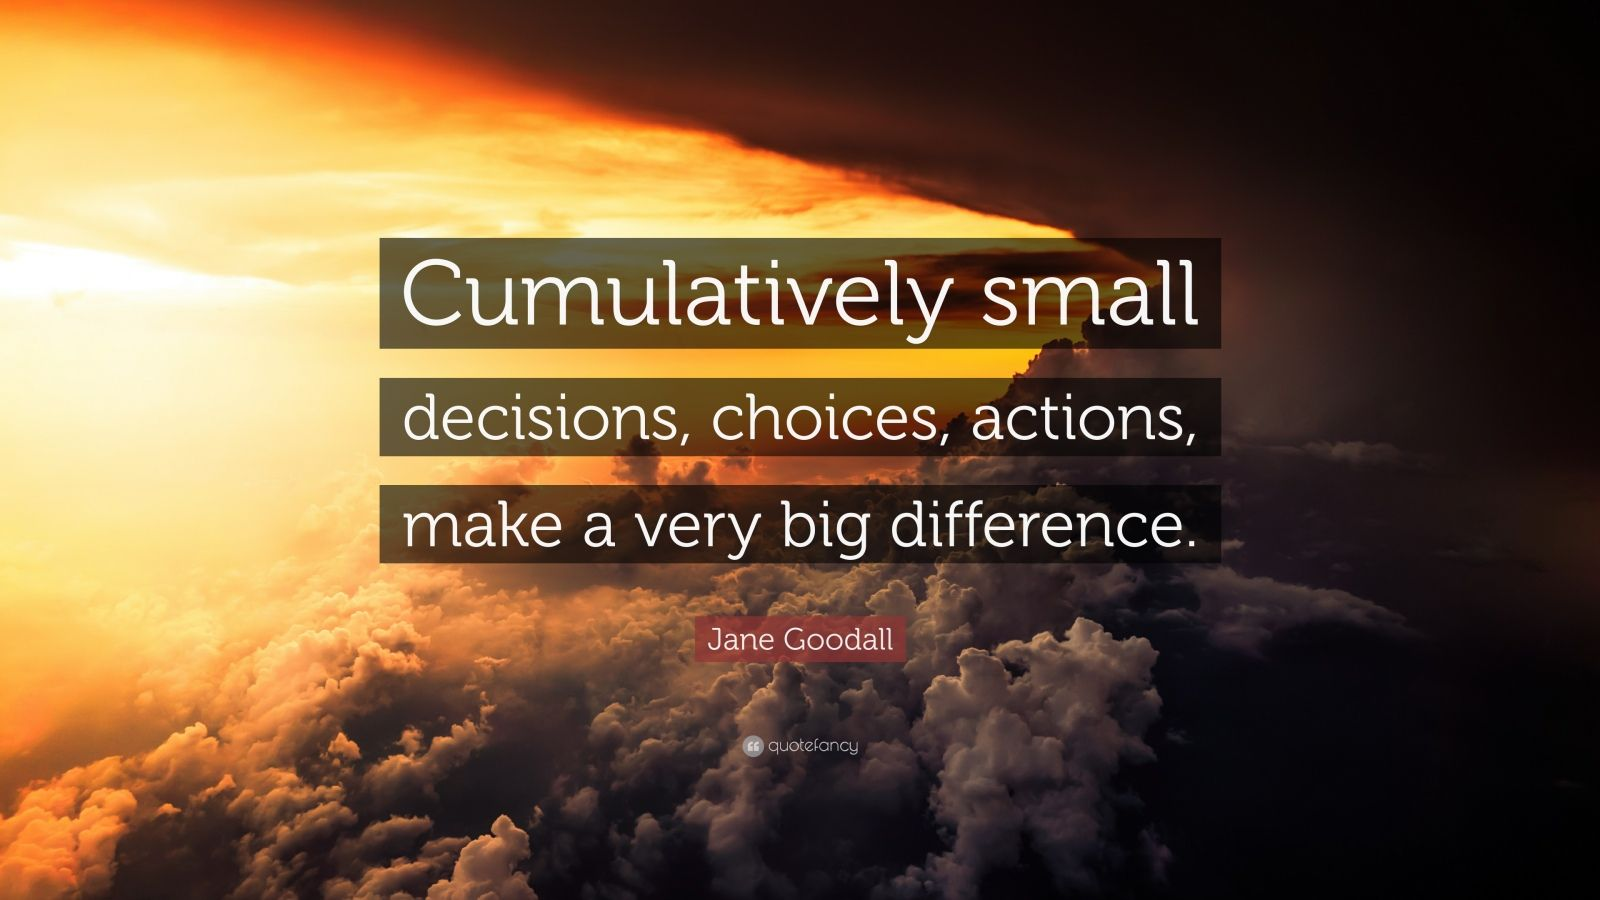 Steve Jobs Wallpaper Quotes Jane Goodall Quote Cumulatively Small Decisions Choices